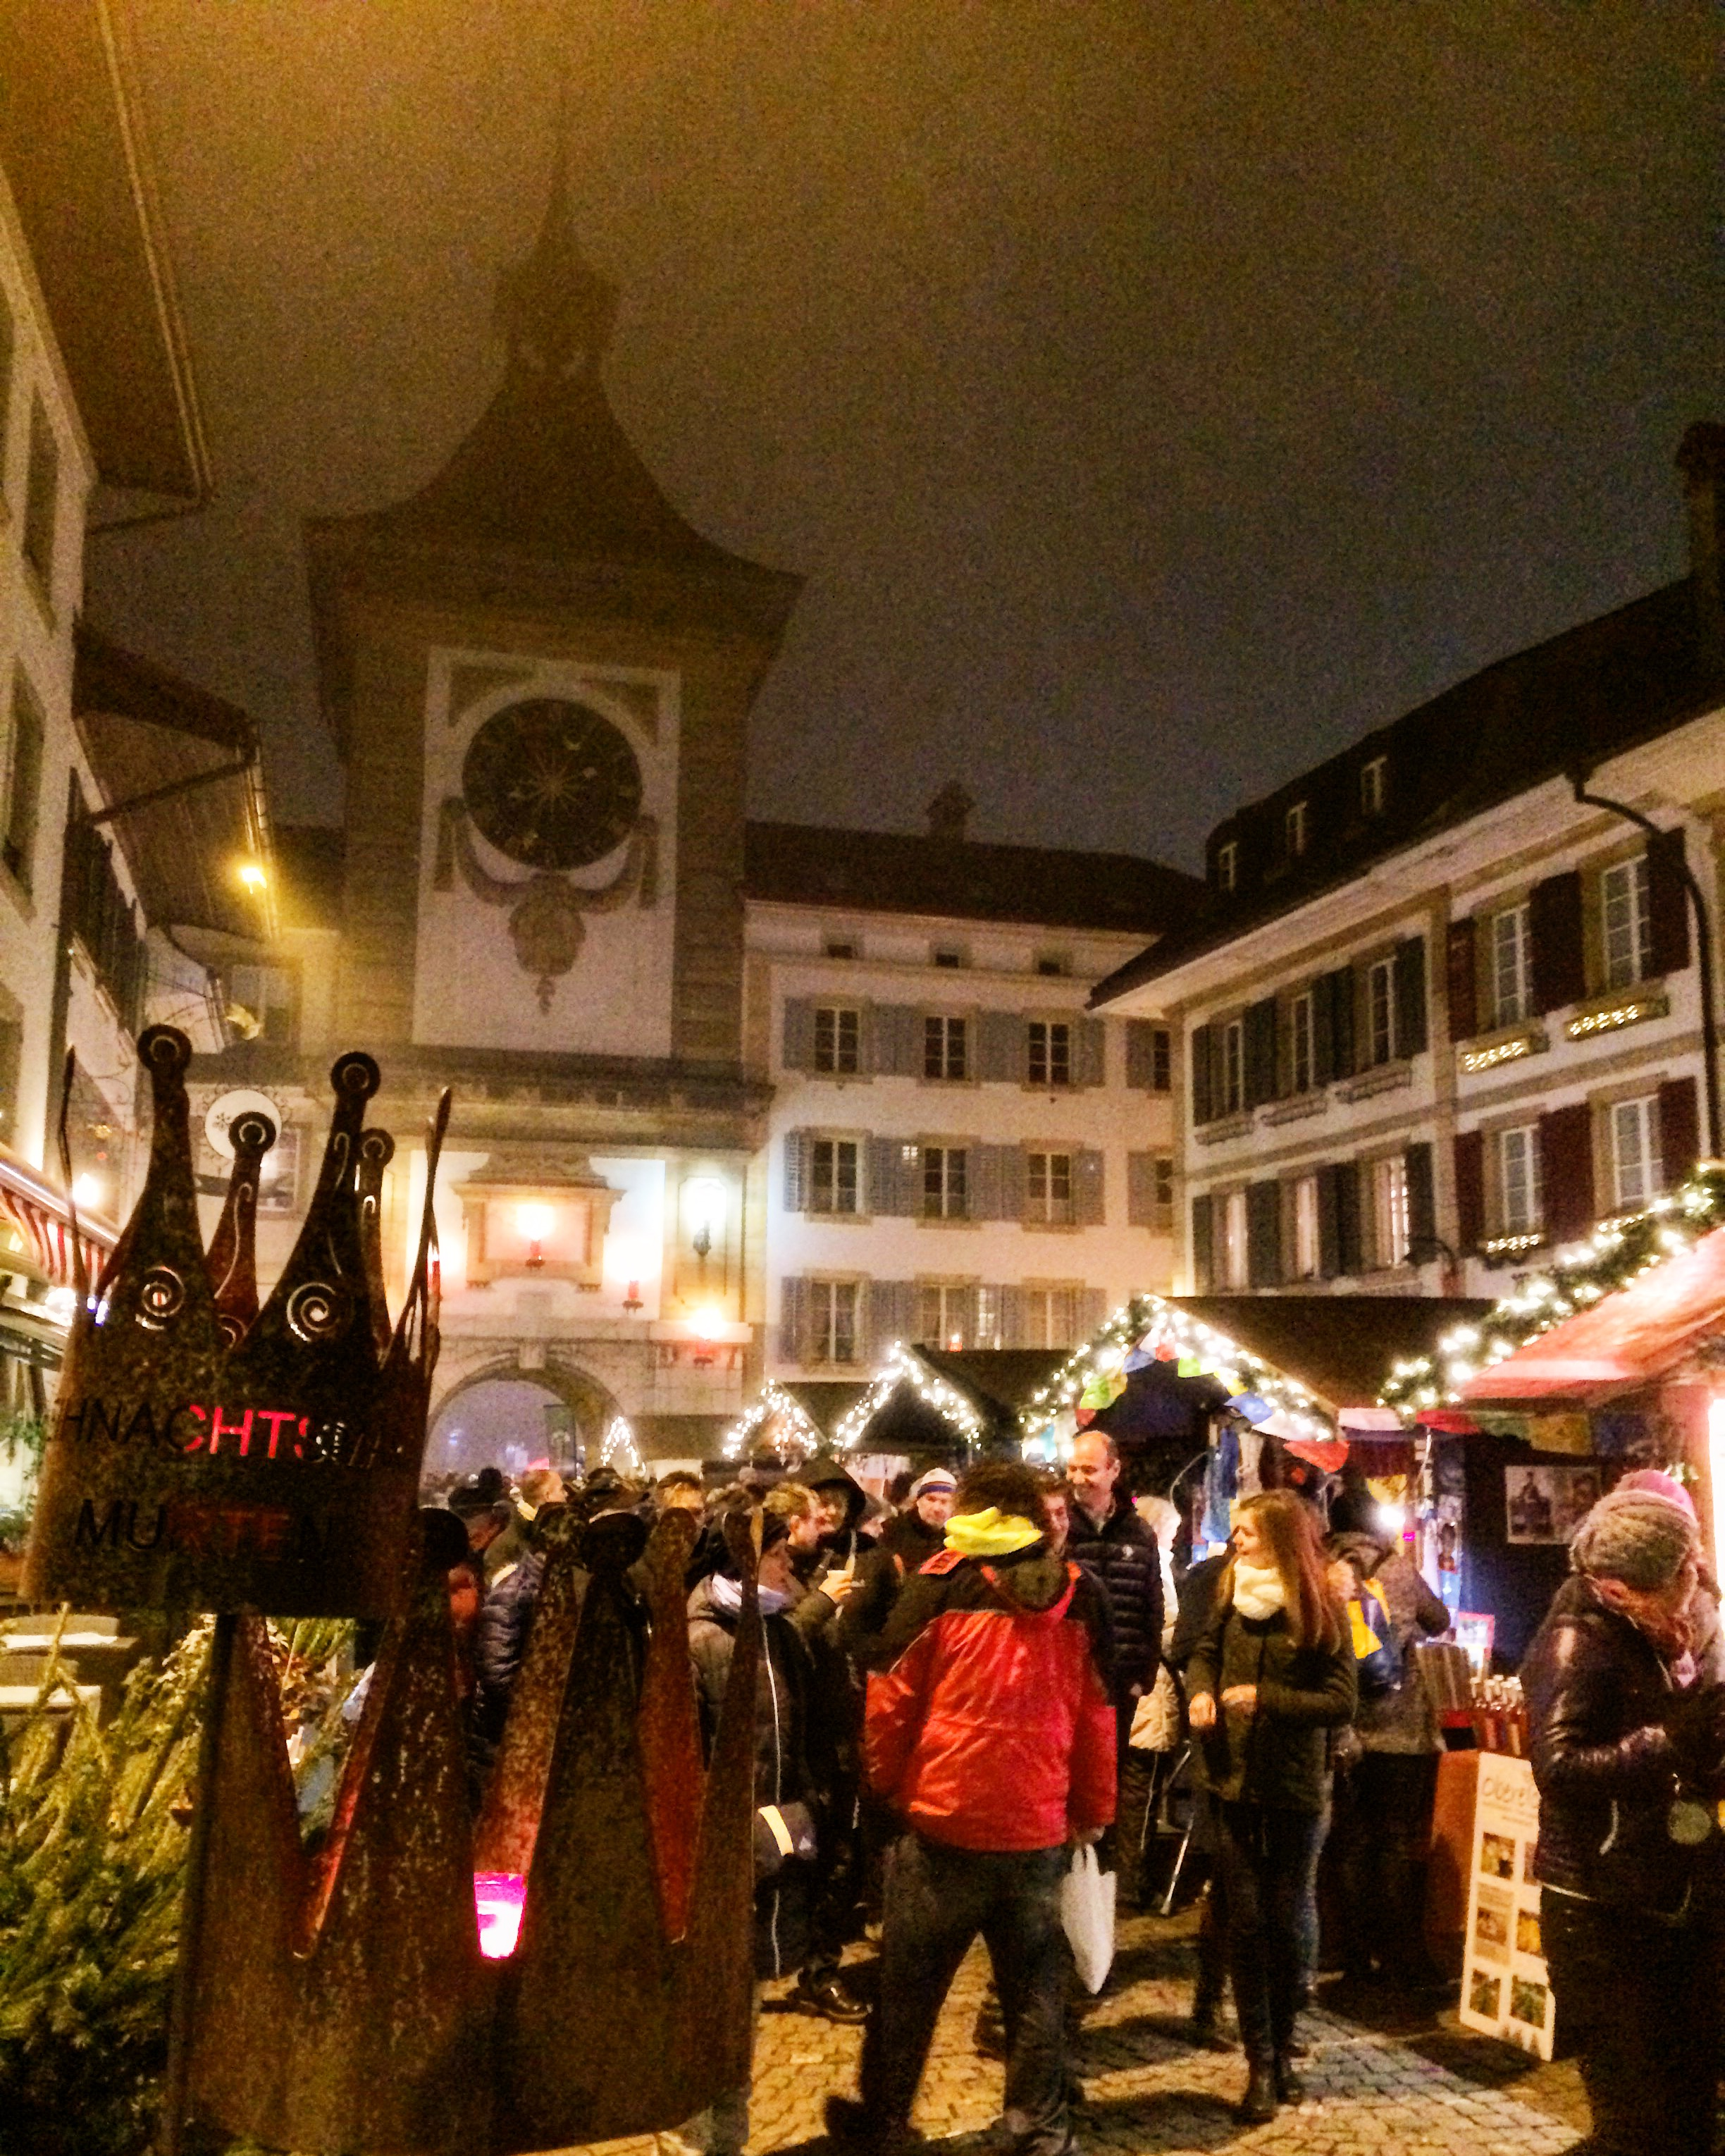 Morat's main square during the Christmas market, filled with people and tiny wood chalets